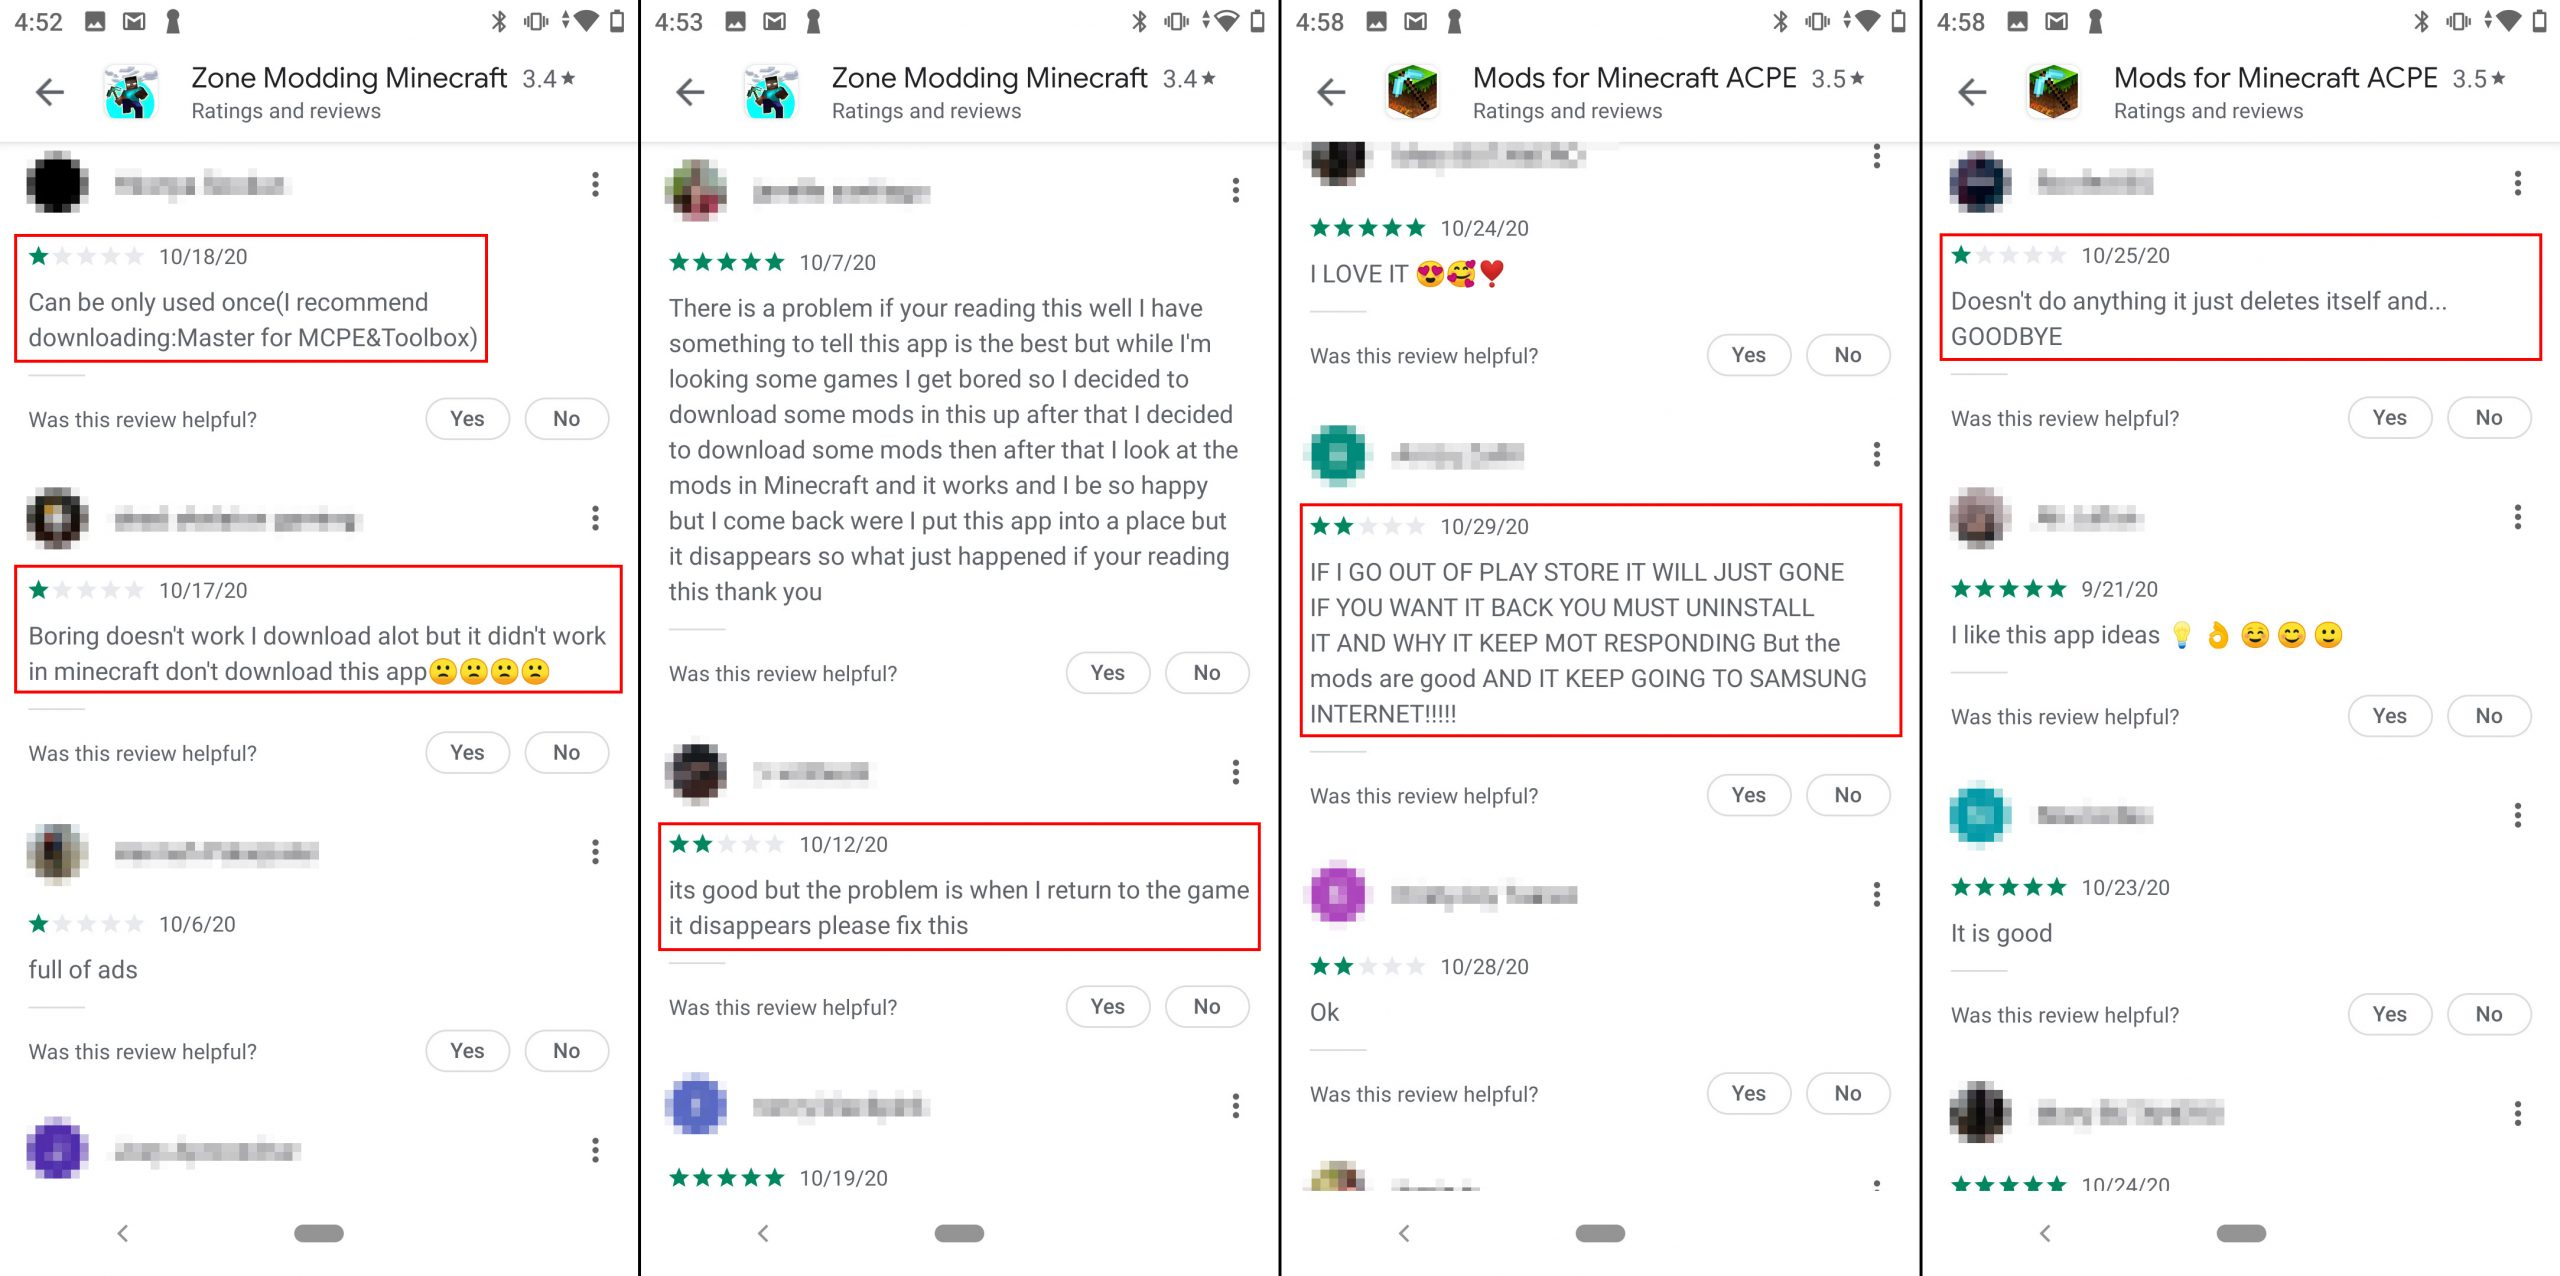 Users complain that the app doesn't work and seemingly deletes itself